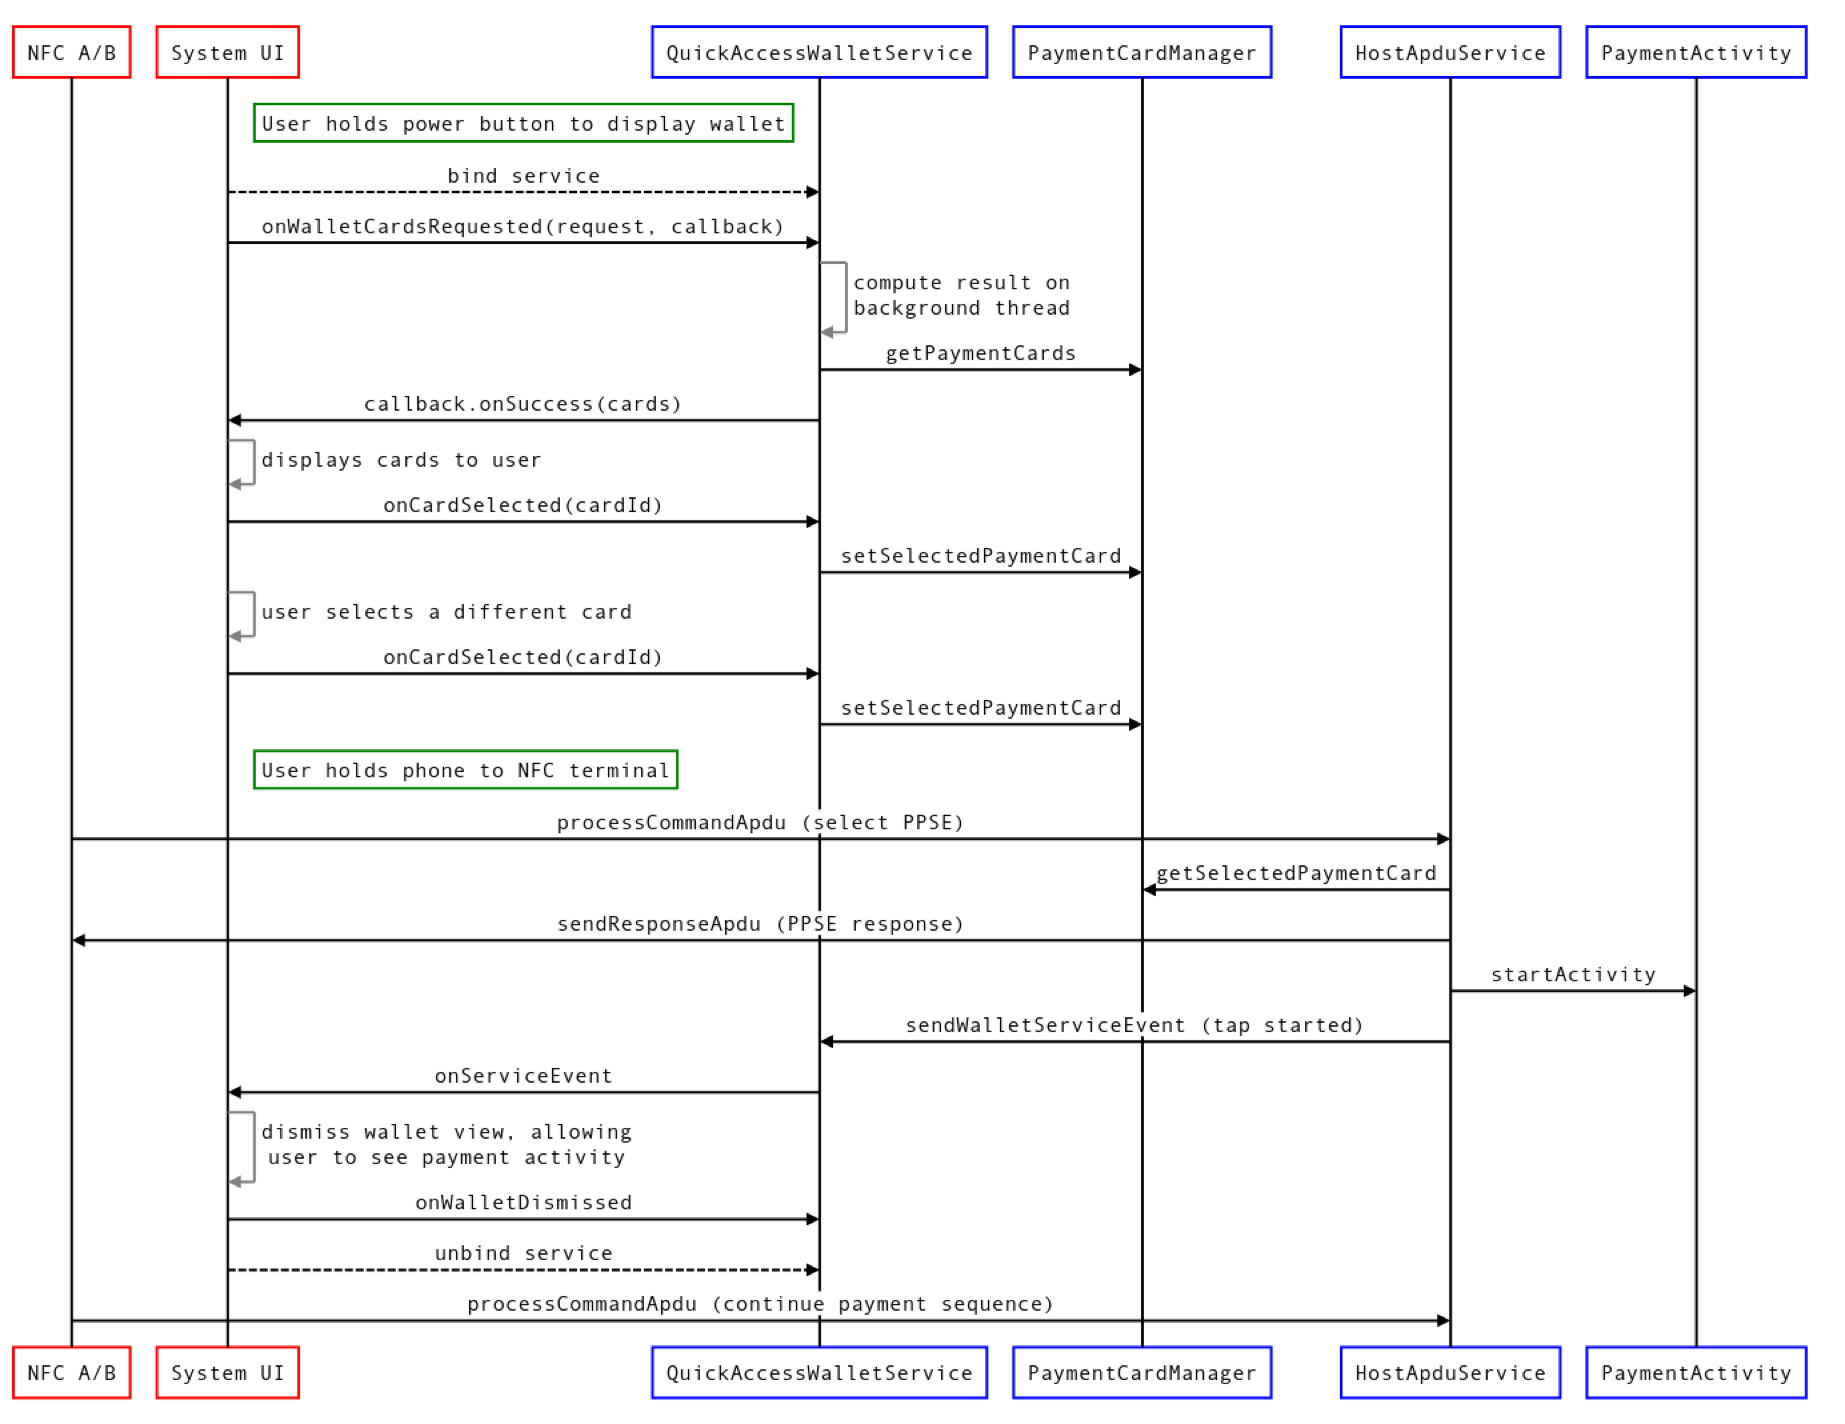 Quick Access Wallet sequence diagram